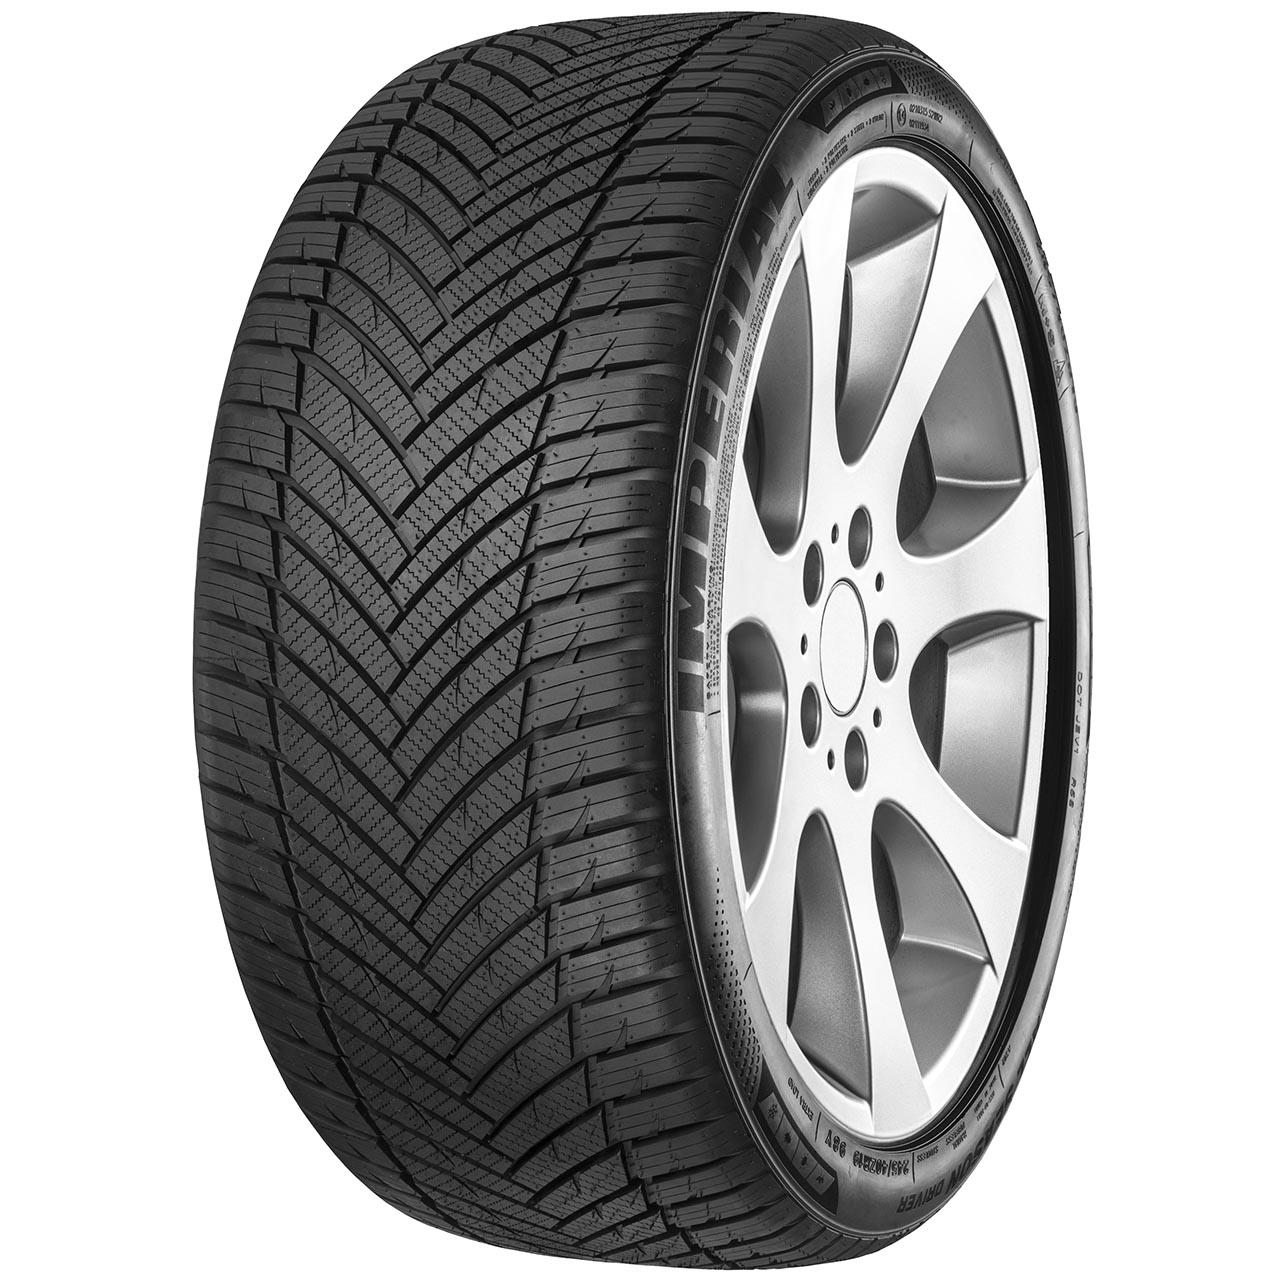 Imperial AS Driver 195/65R15 91H